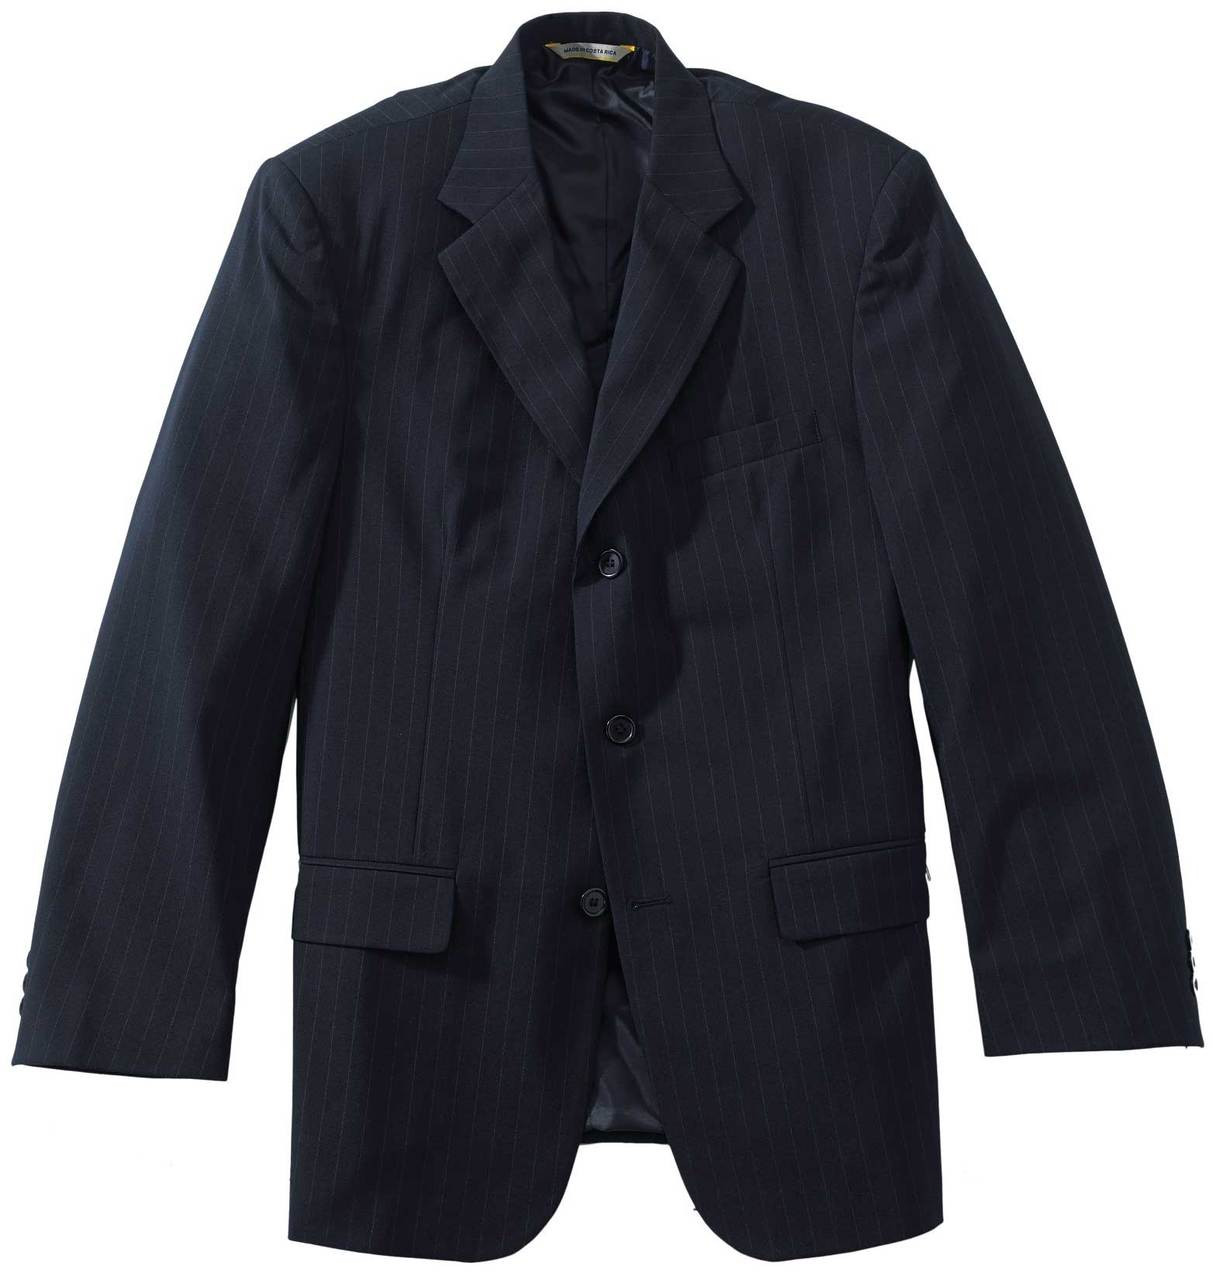 Pinstripe Single Breasted Suit Coat CLOSEOUT No Returns